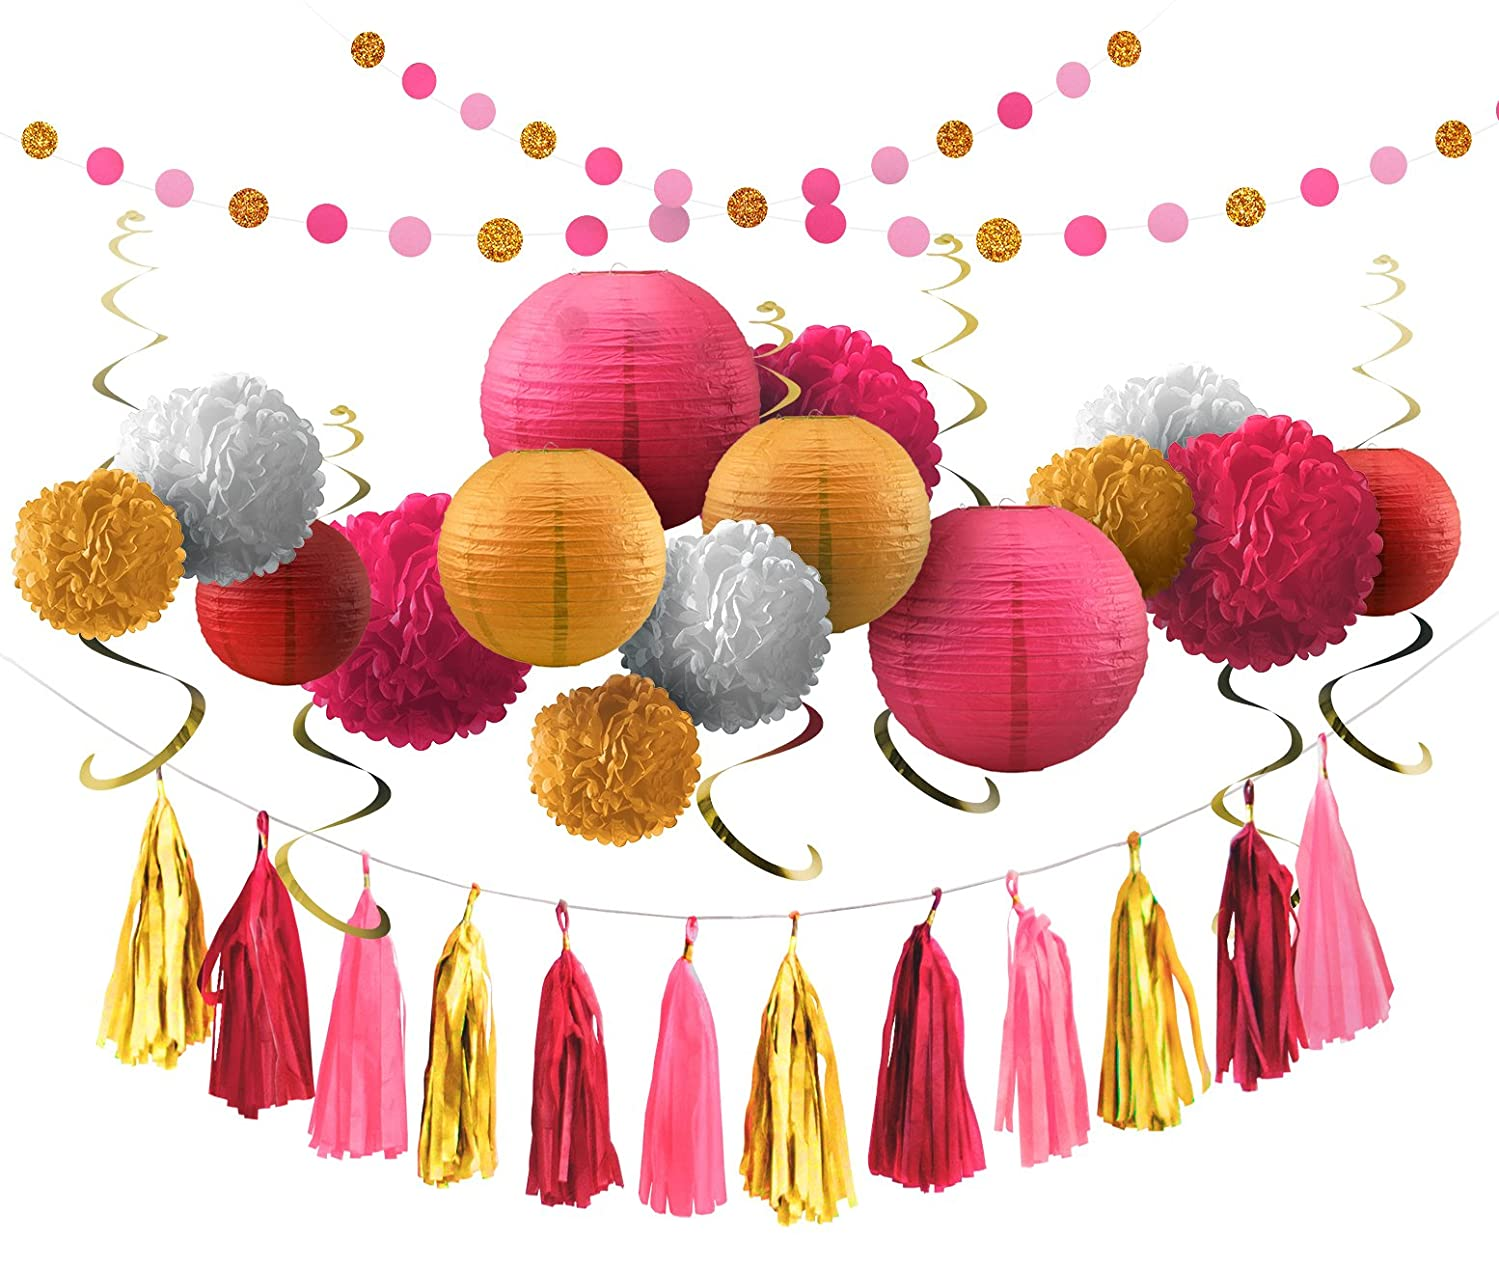 Voplop Party Tissue Decorations of 35 pcs - Paper Pom Poms and Lanterns - Circle and Tassel Garlands - Glitter Hanging Swirls - For Baby Showers - Birthday Party - Weddings